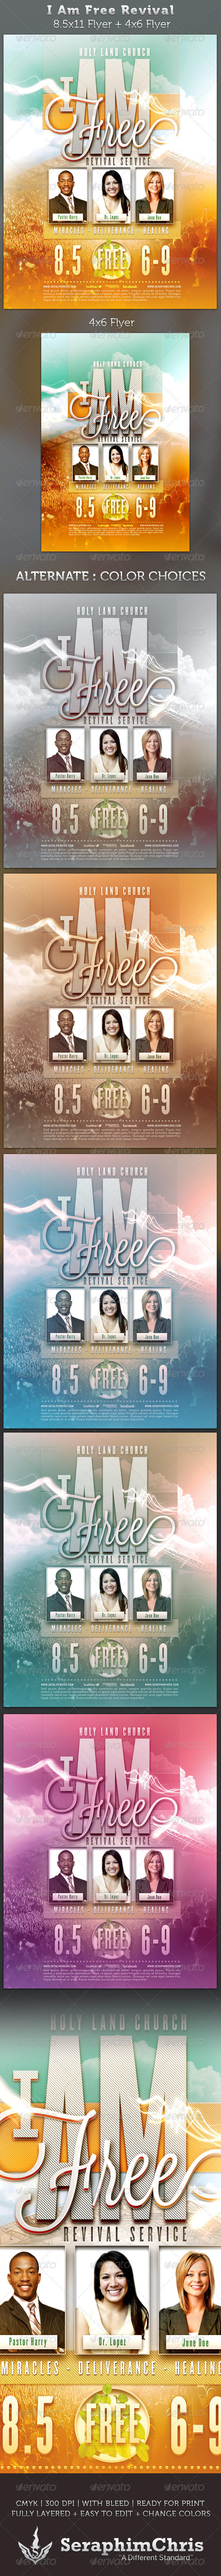 i am free revival flyer full page and 4x6 template on behance